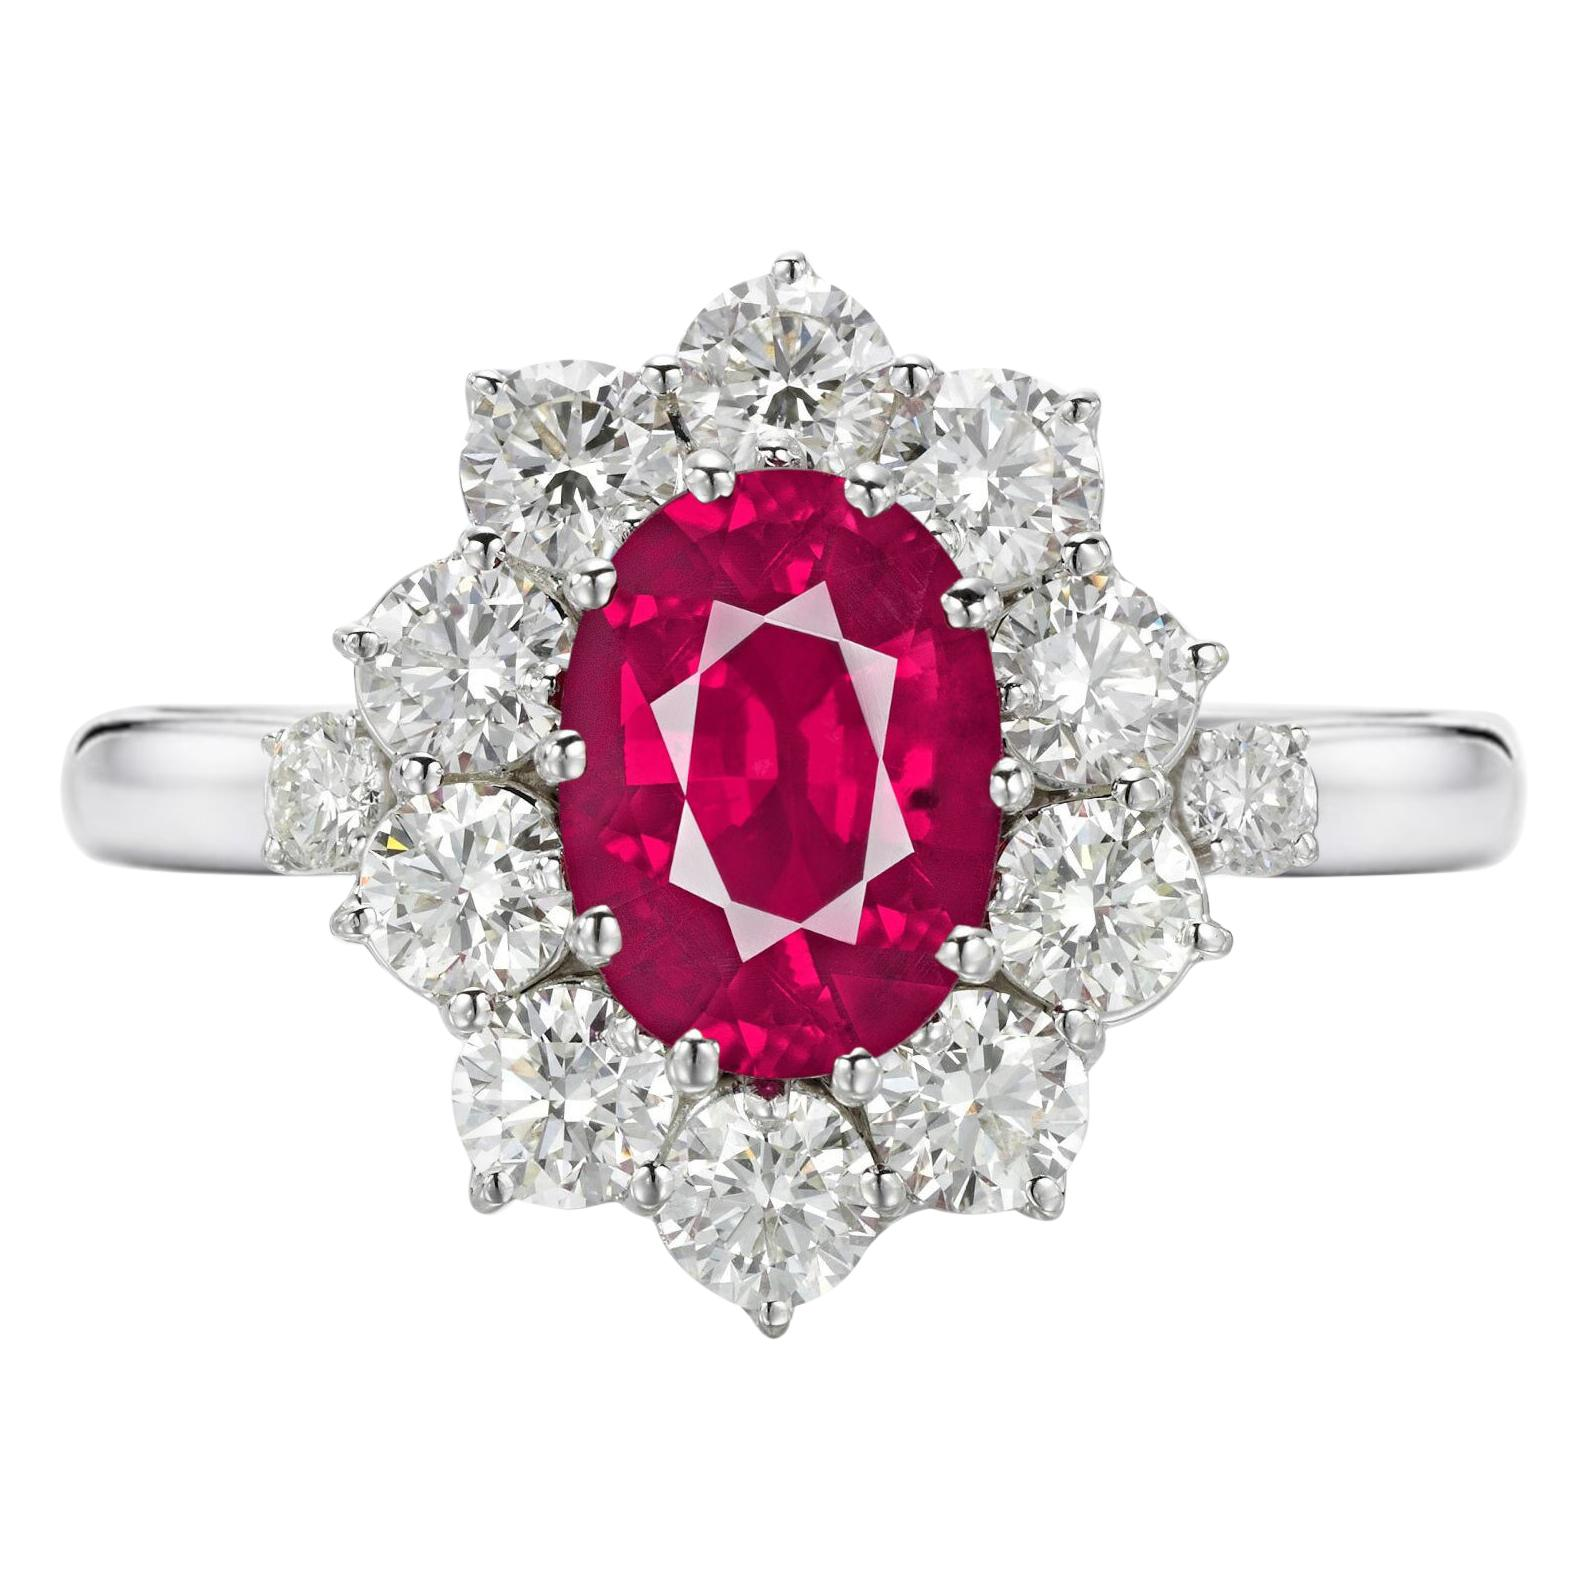 GIA Certified 3 Carat No Heat Red Ruby Diamond Halo Solitaire Platinum Ring